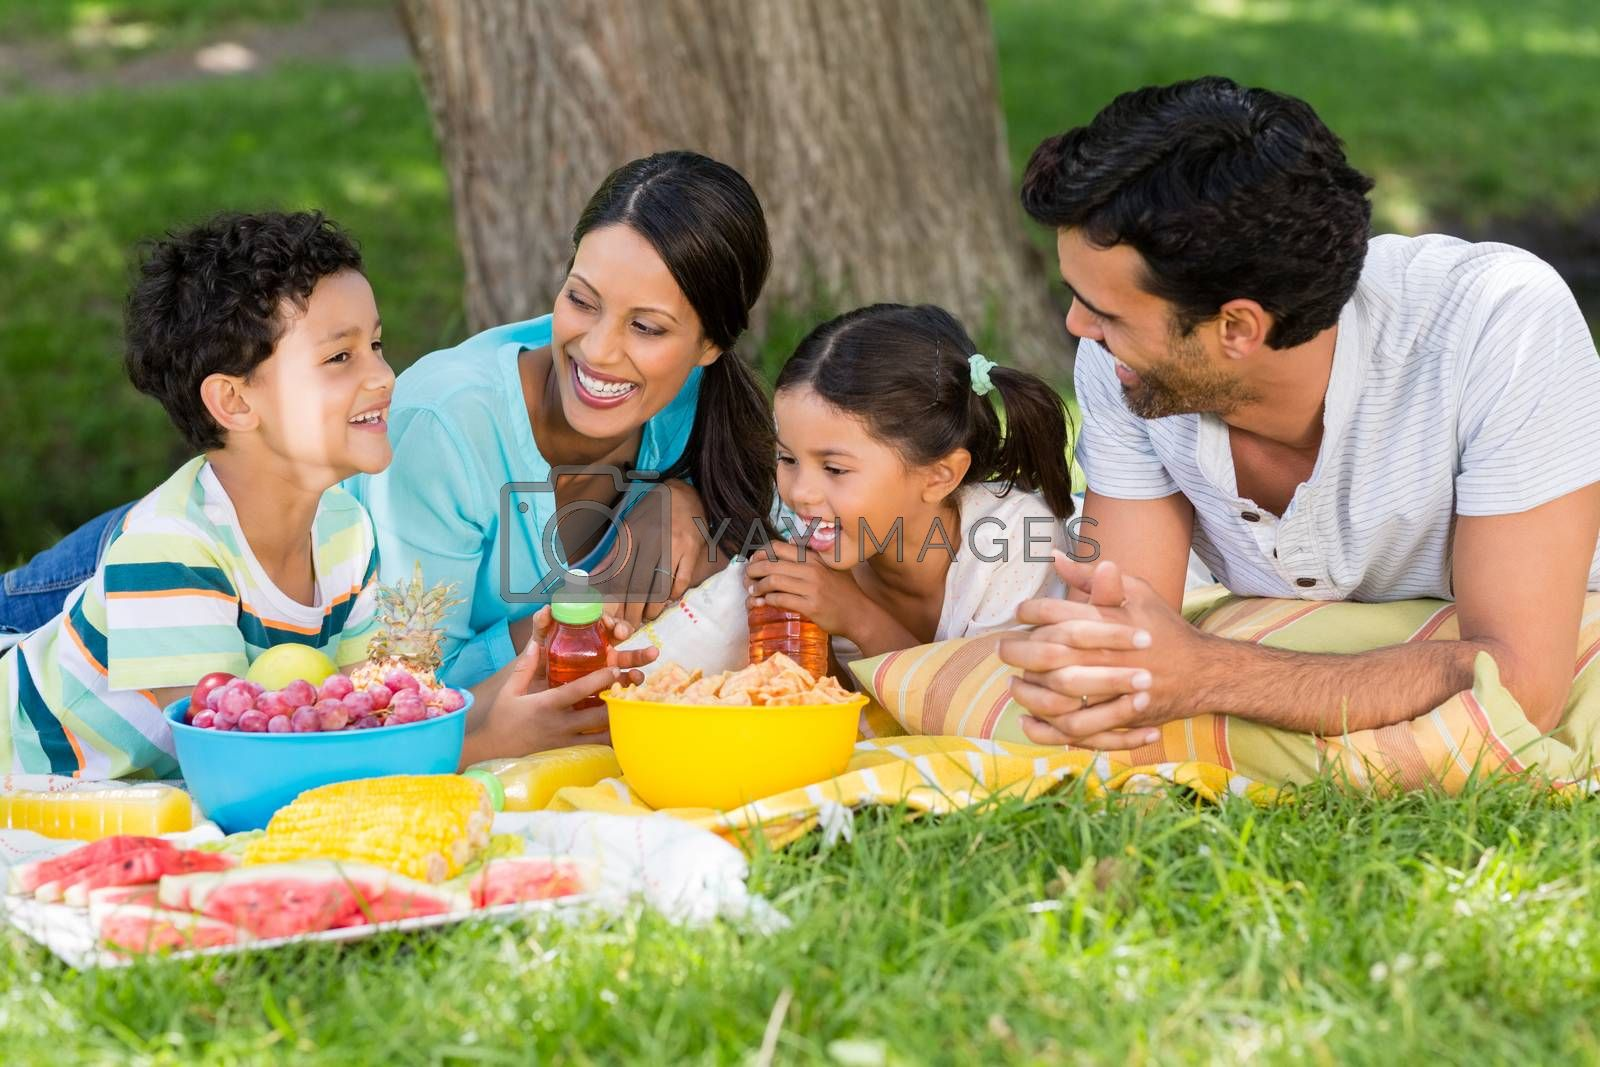 Happy family enjoying together in park by Wavebreakmedia